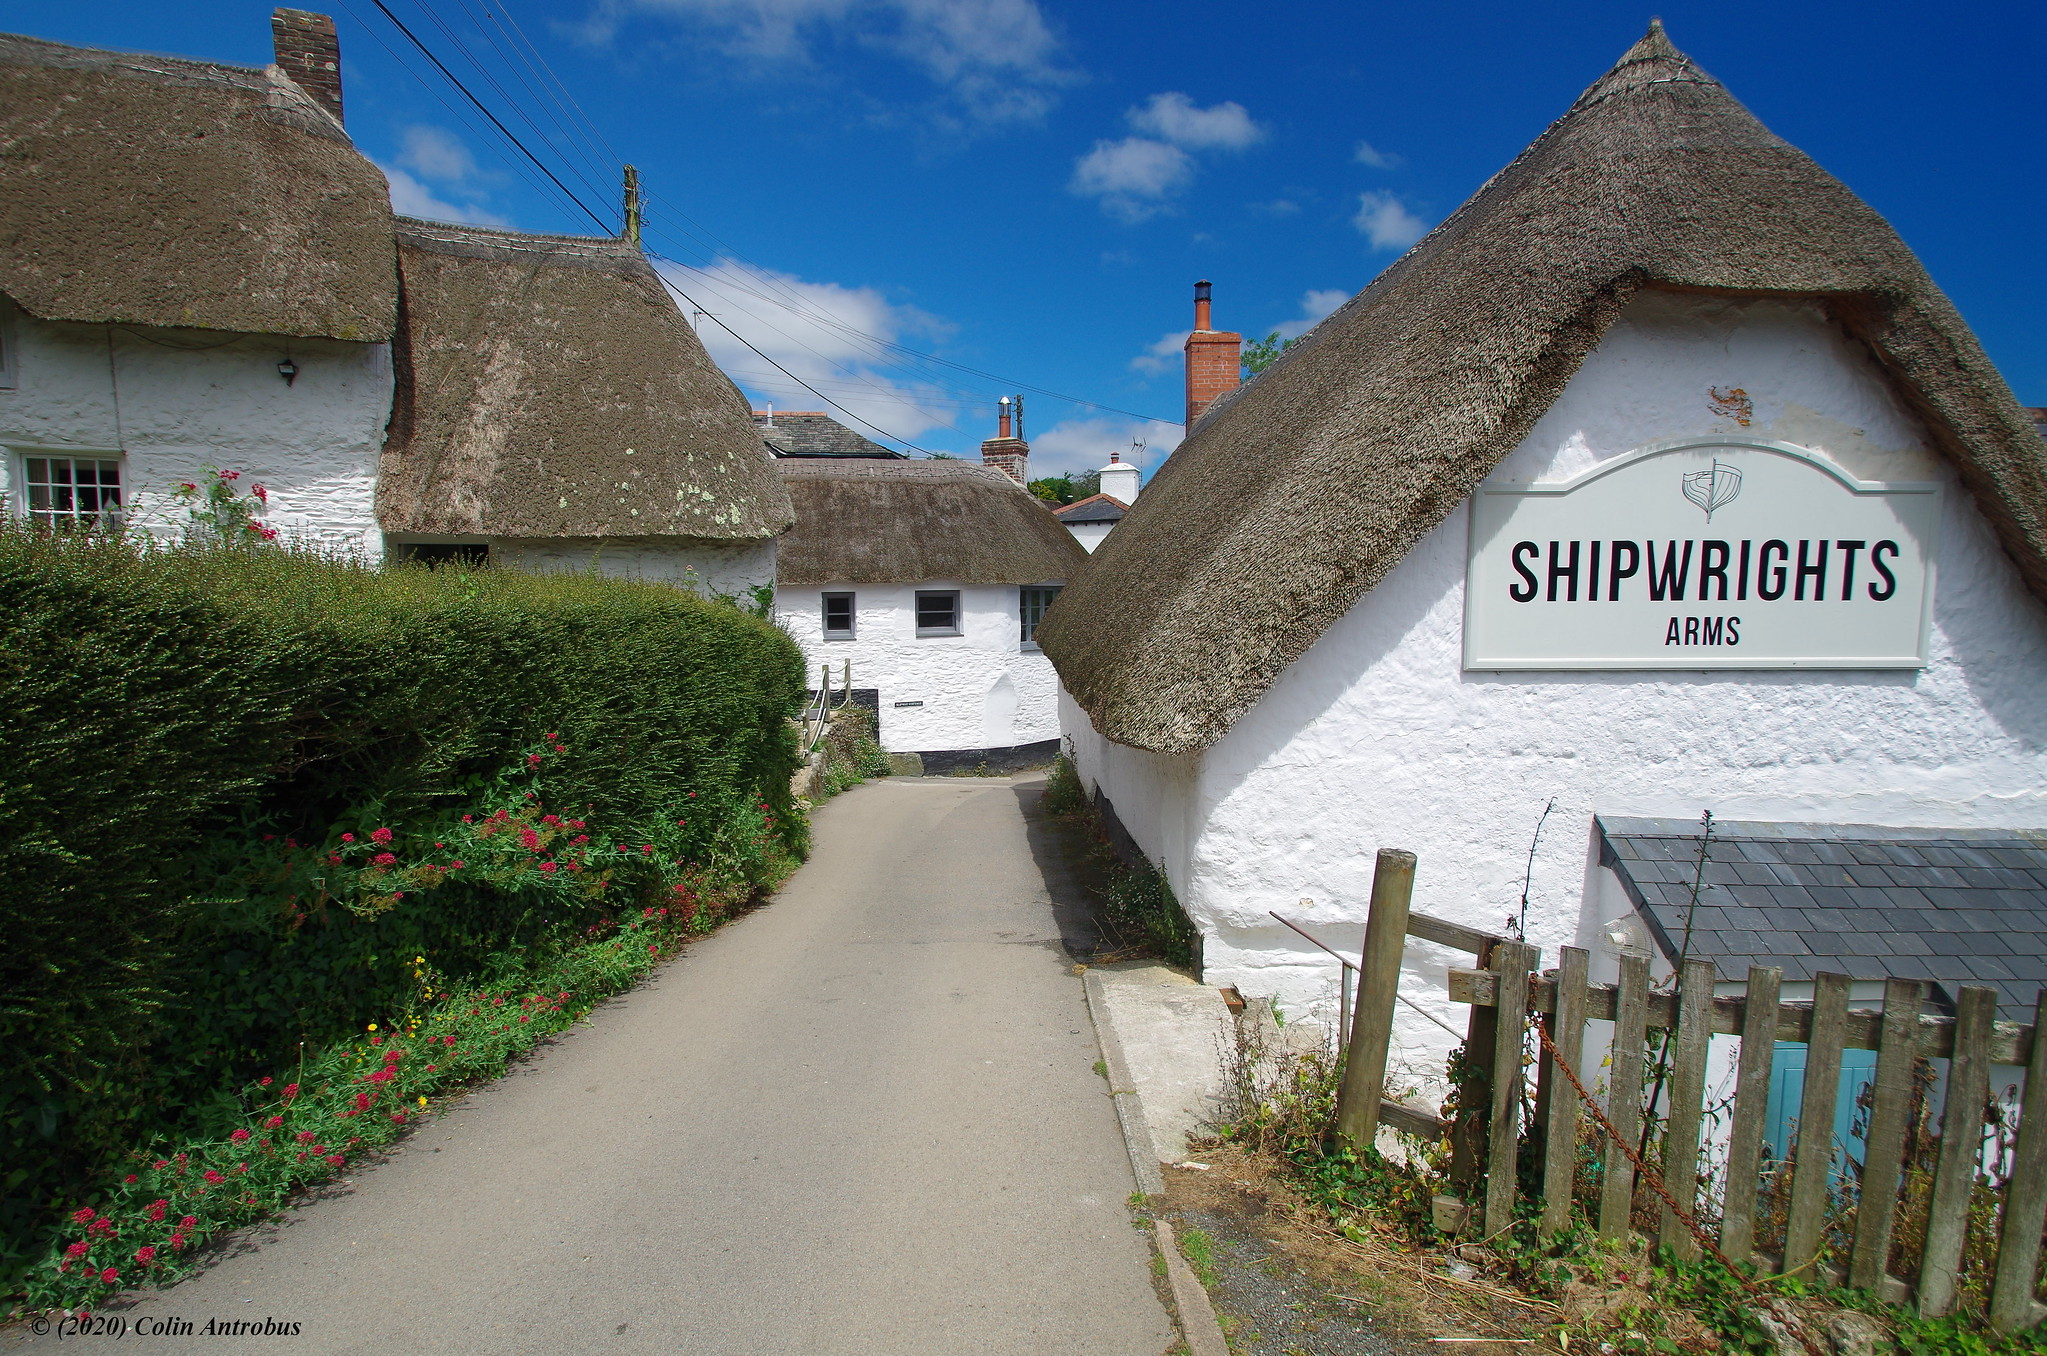 The Shipwrights Arms at Helford, Cornwall by Kernowfile.jpg